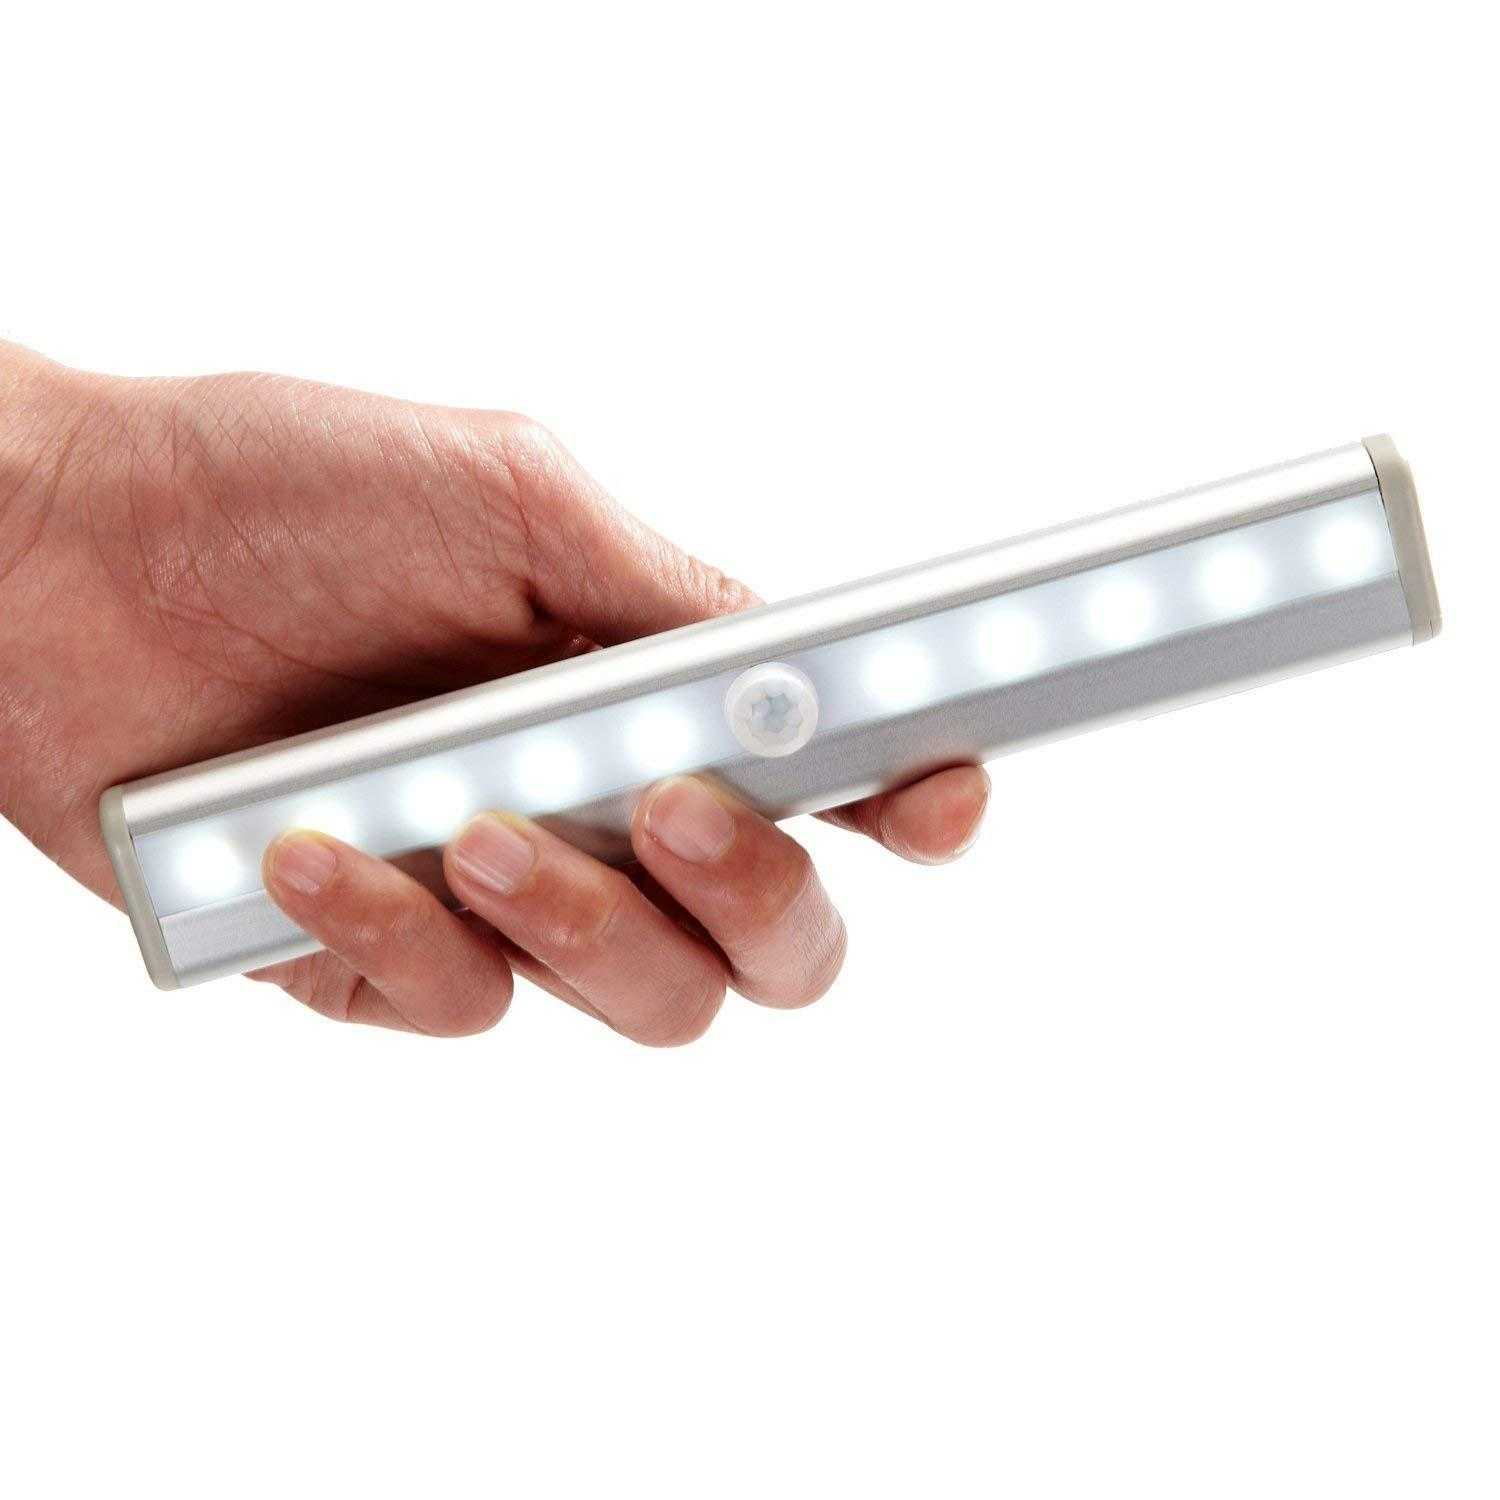 Rechargeable Bathroom Light Motion Sensor Led Wardrobe Night Light Stick On Magnetic Strap For Easy Removal No Wiring Specialty Lighting To Decor Your Home Singapore